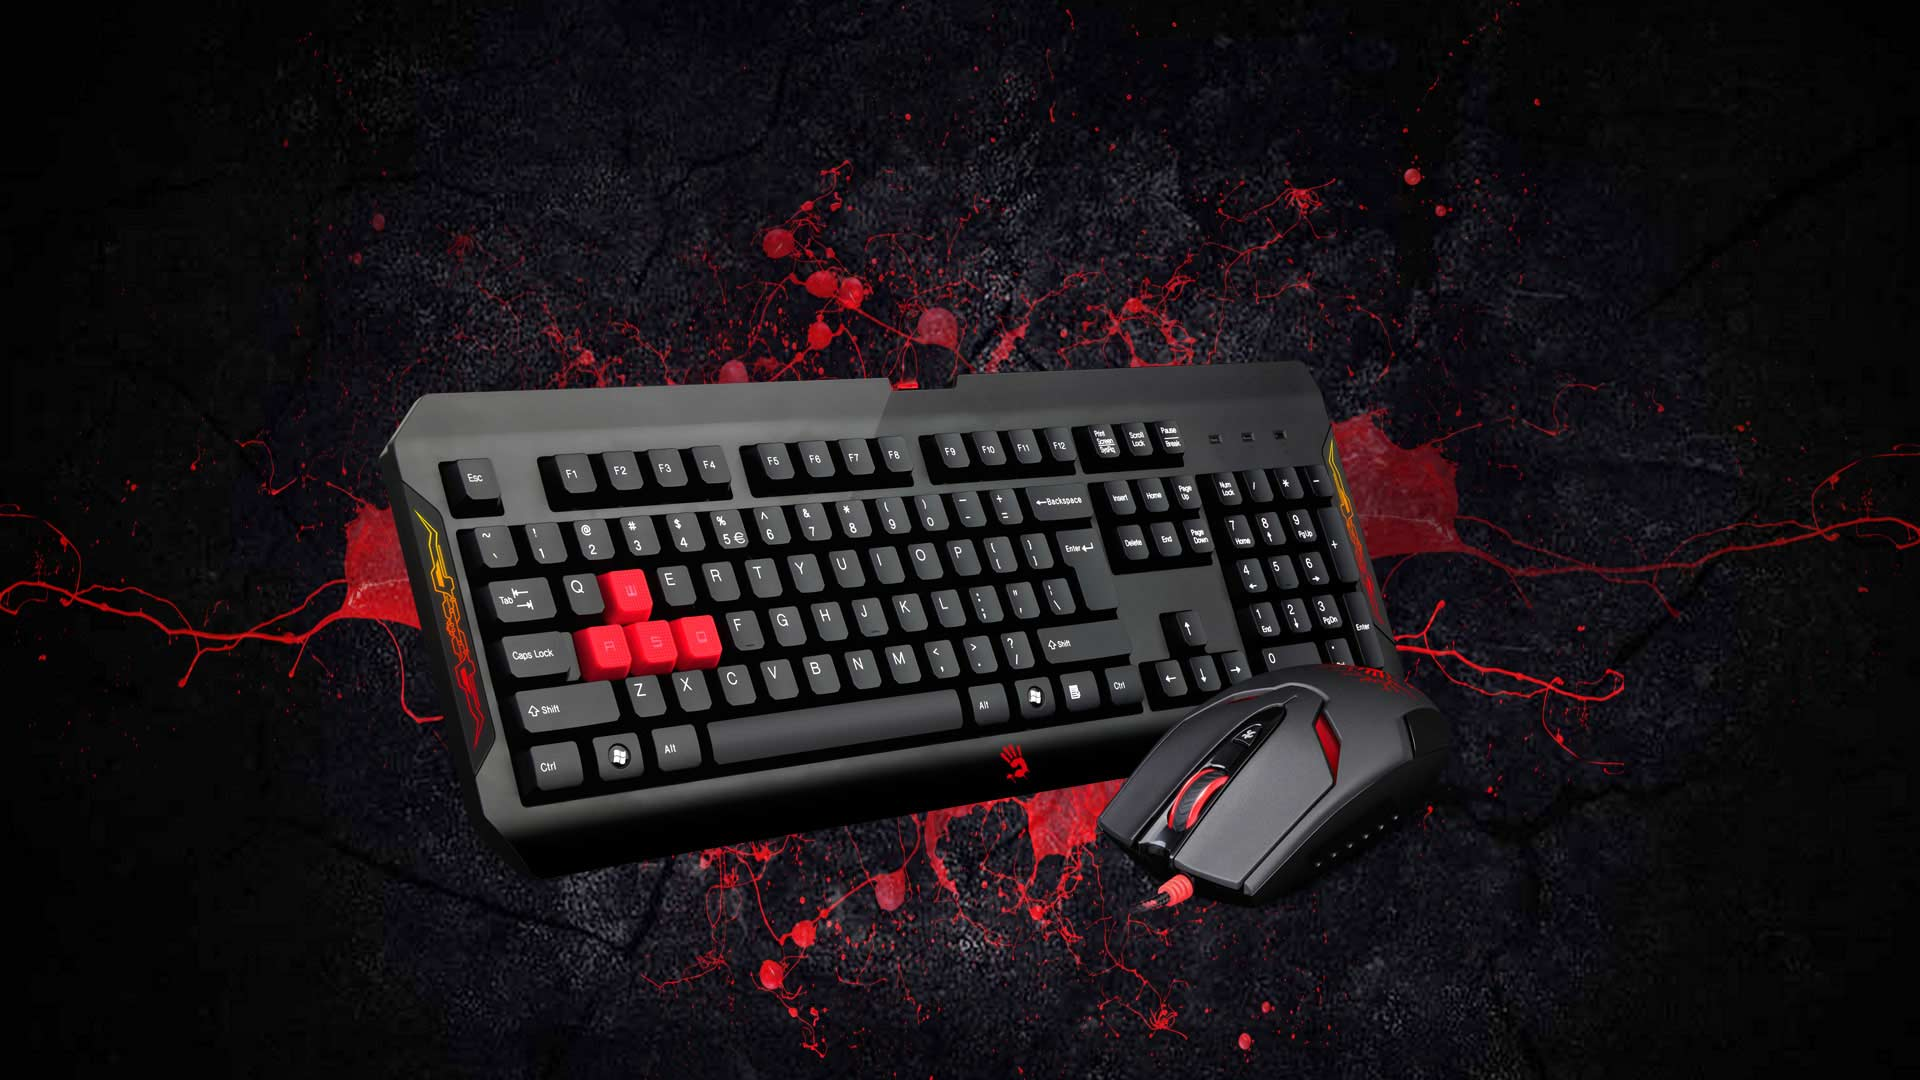 Bloody Q1100 Blazing Gaming Desktop Keyboard Mouse Usb Optical Logitech B100 Advanced Precision Gear Bloodys Ultimate Provide An Advance Technology Paired With Providing The Advantage To Conquer